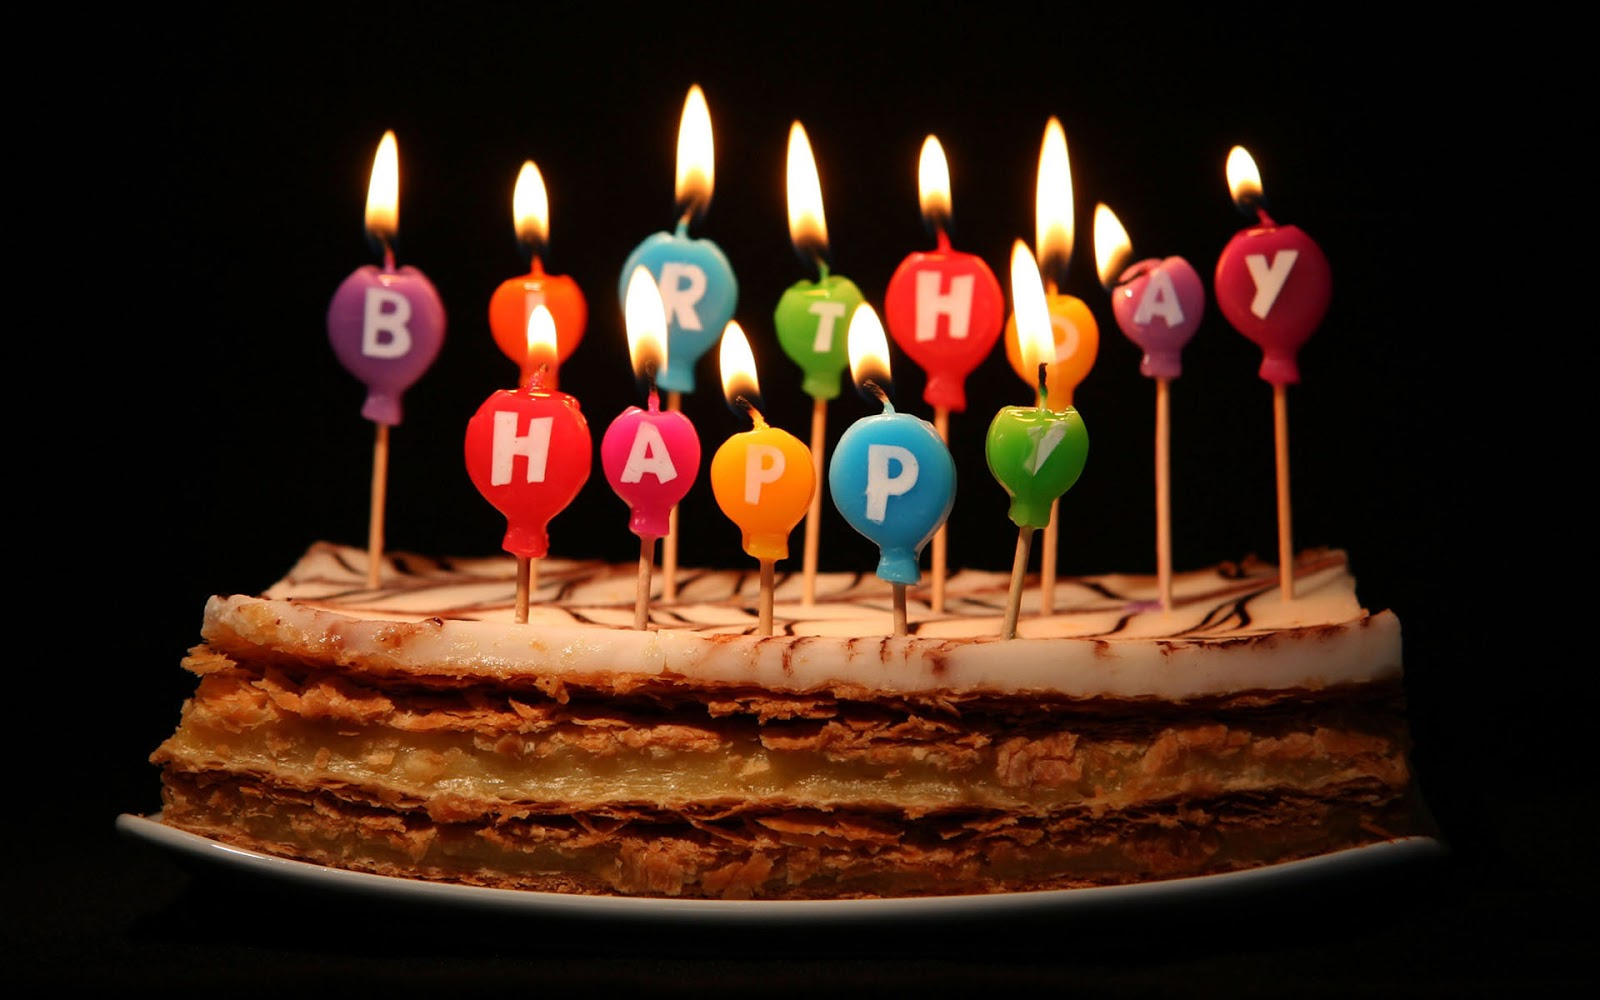 birthday wishes images hd ; candles-birthday-cake-with-black-background-images